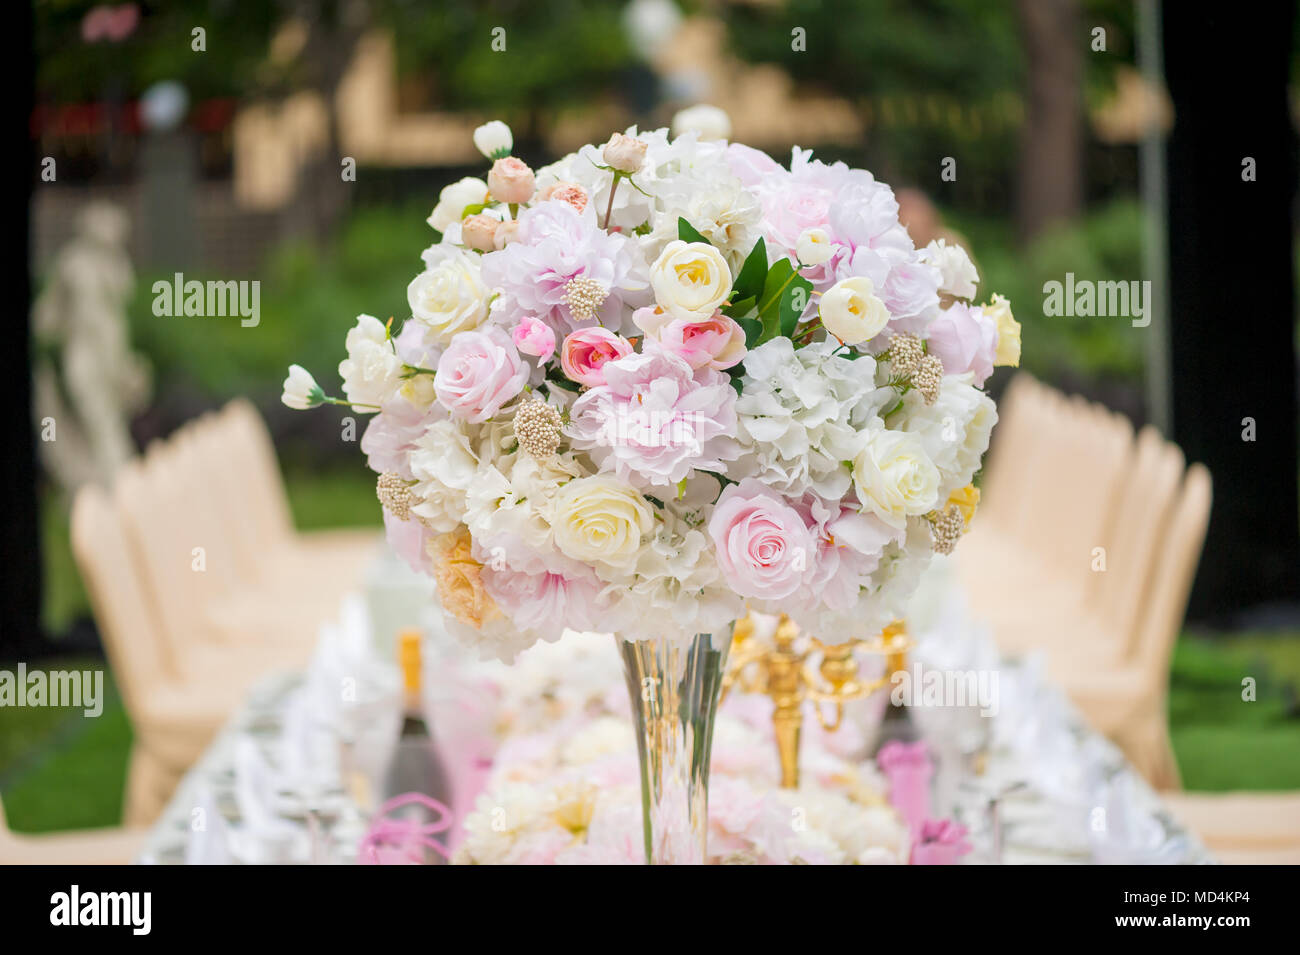 Wedding decoration with flowers on a table outdoors stock photo wedding decoration with flowers on a table outdoors junglespirit Images